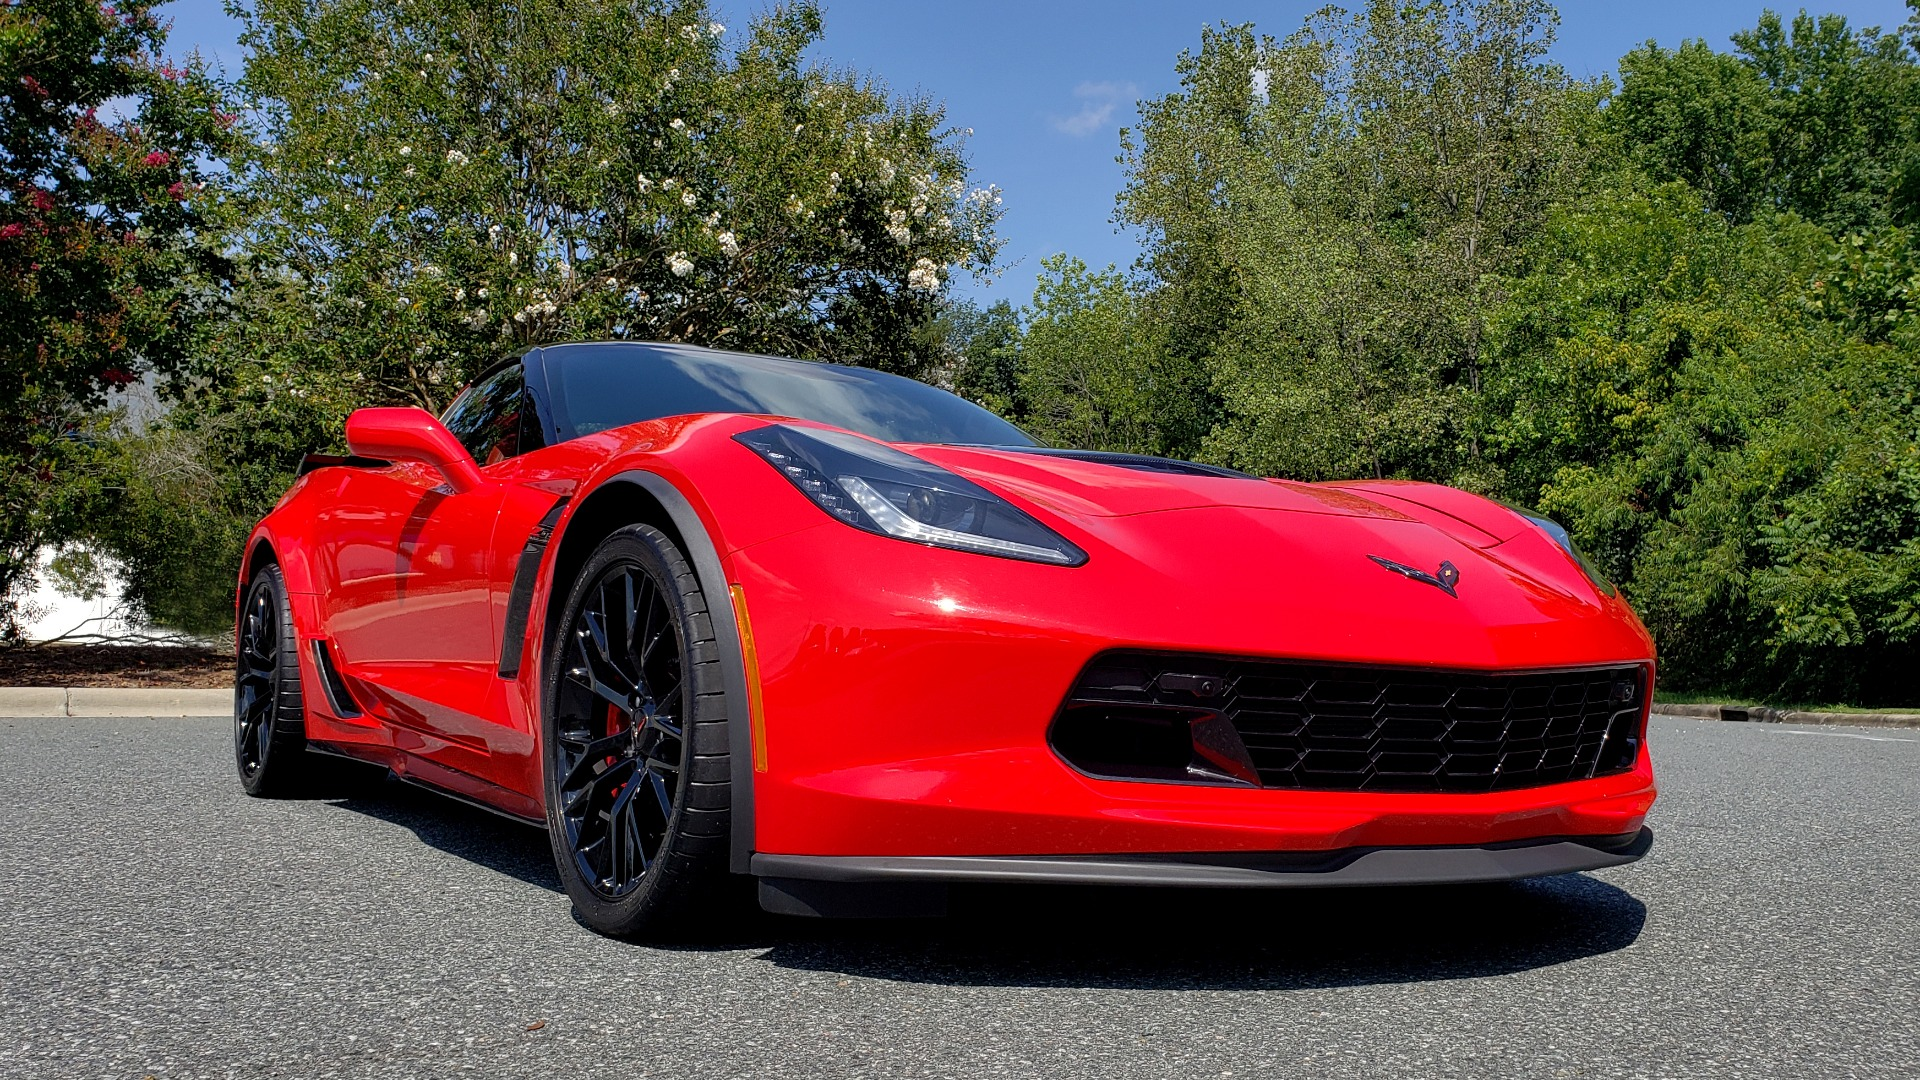 Used 2016 Chevrolet CORVETTE Z06 3LZ / 6.2L SUPERCHARGED 650HP / NAV / BOSE / REARVIEW for sale Sold at Formula Imports in Charlotte NC 28227 4